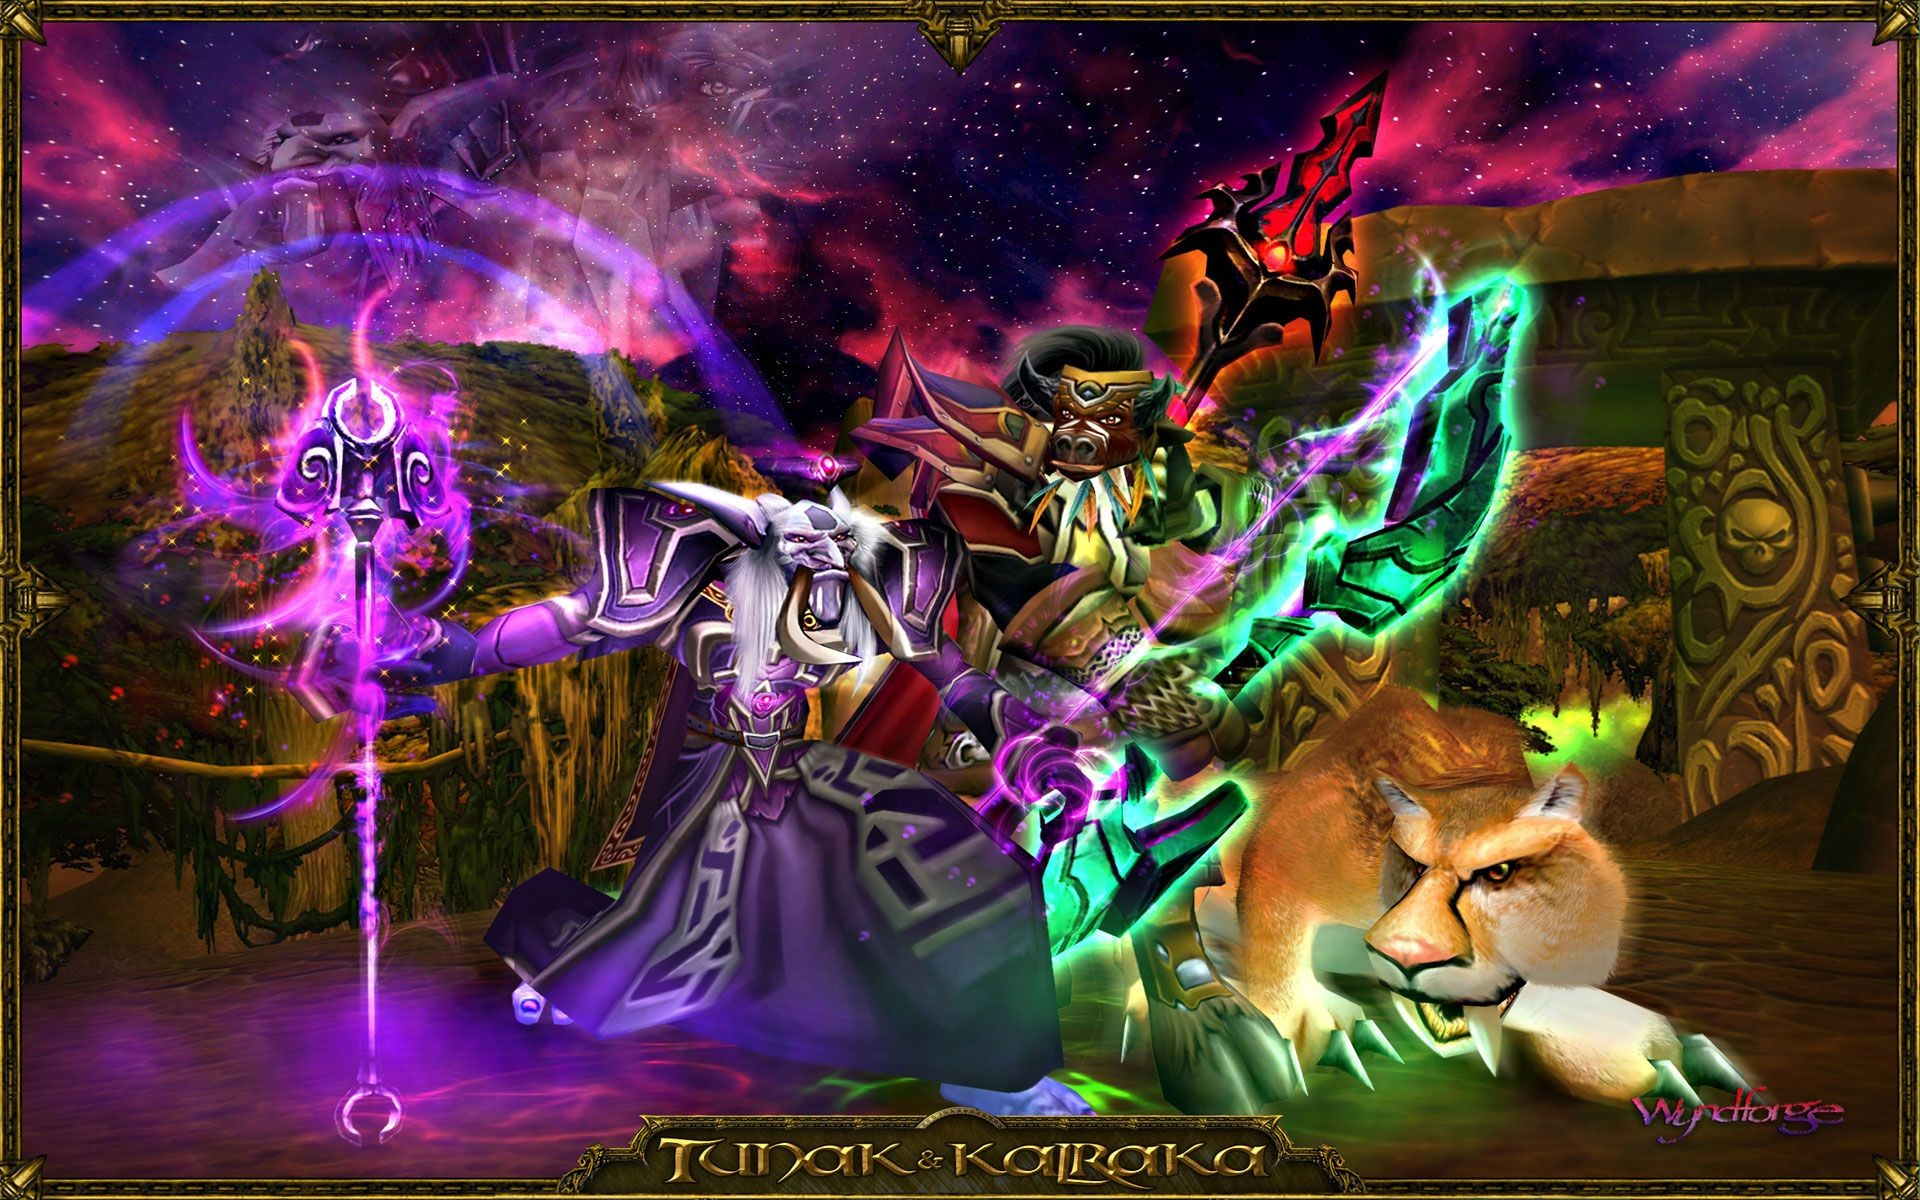 Res: 1920x1200, Browse Art DeviantArt 806×626 Wizard101 Wallpapers (33 Wallpapers) |  Adorable Wallpapers